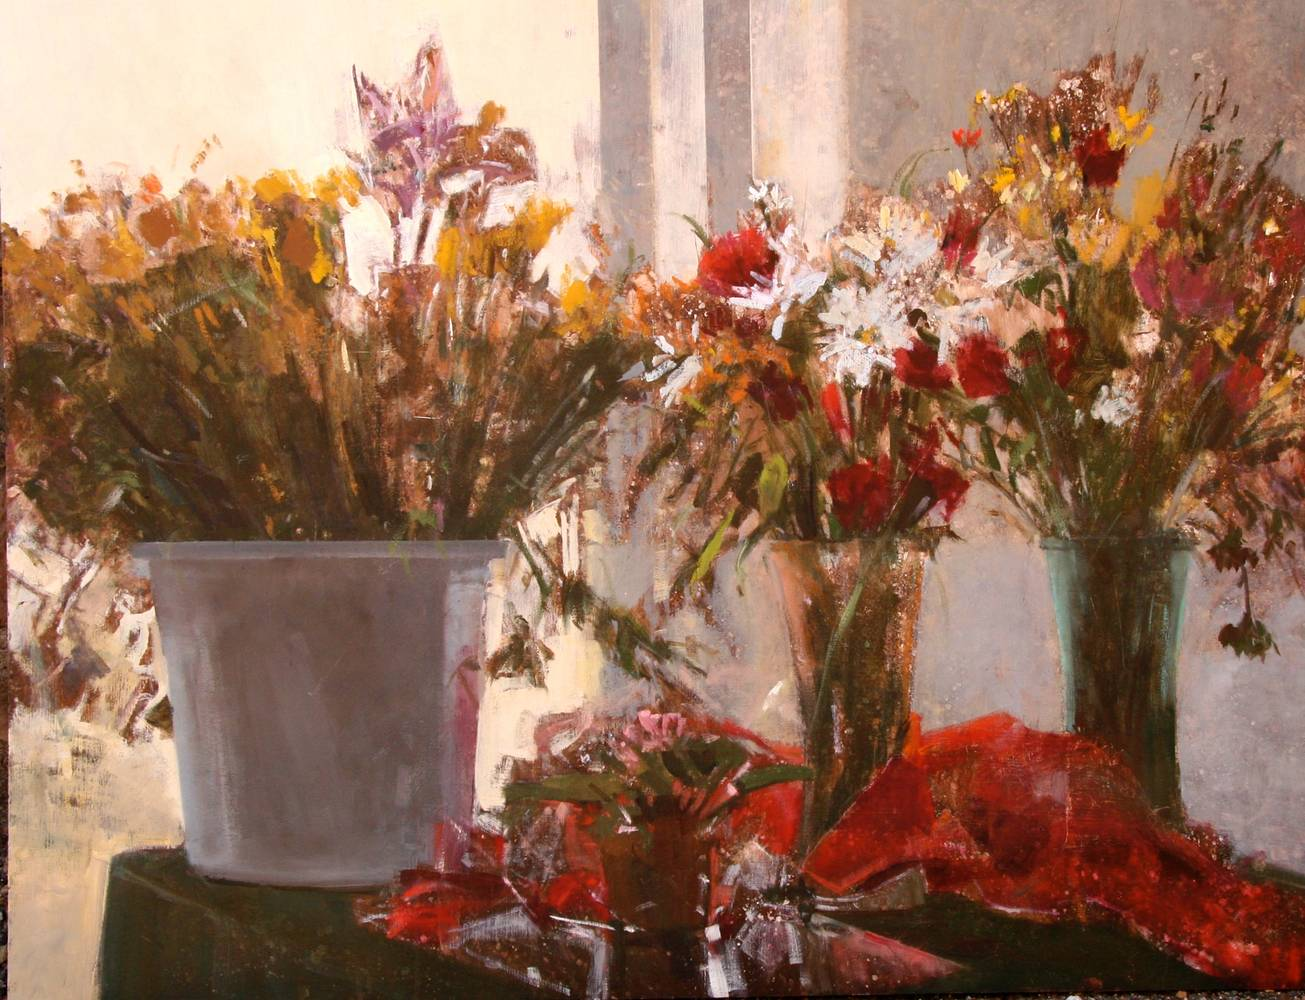 Oil painting Flower Shoppe by Susette Gertsch